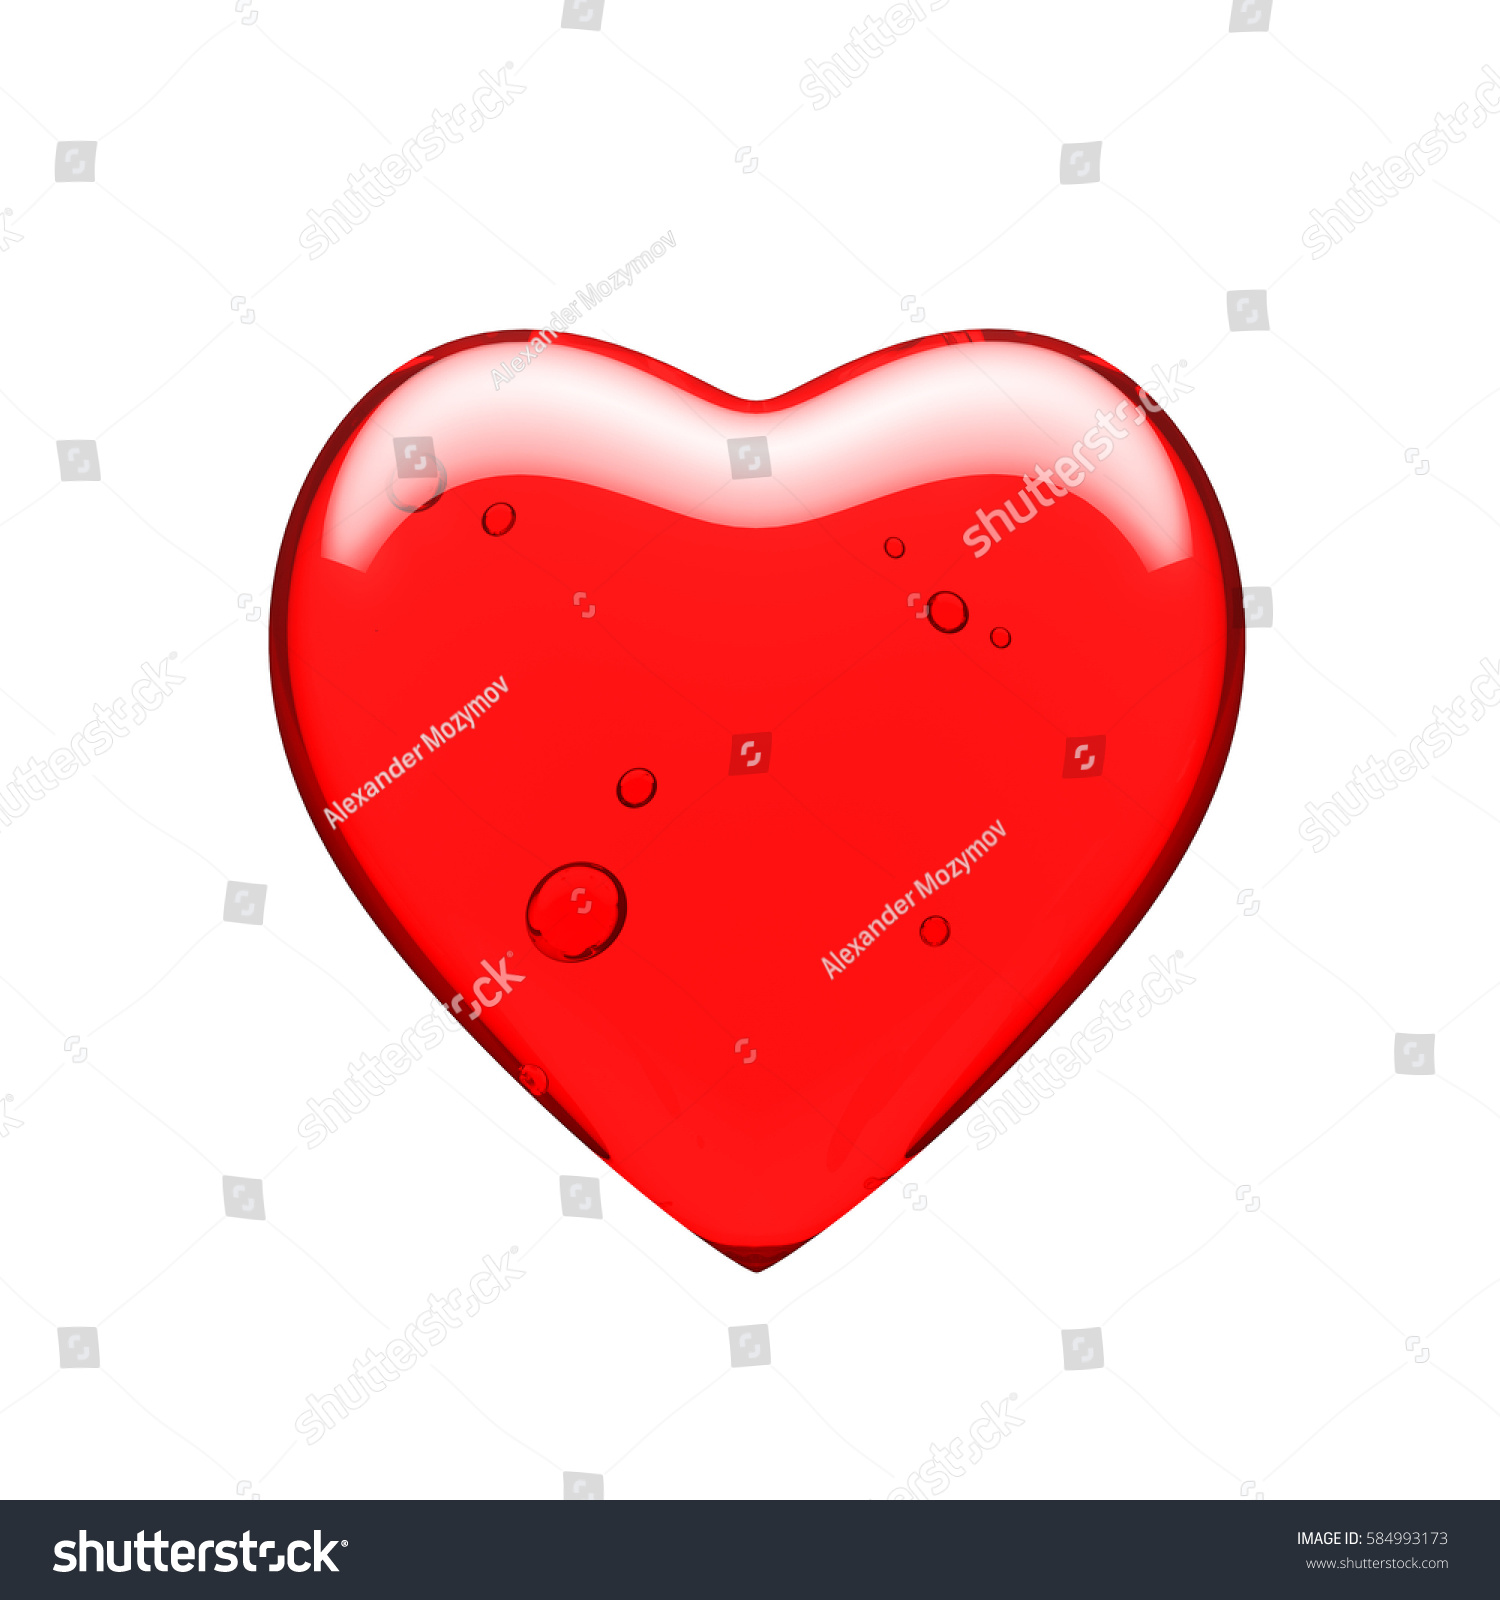 Glass heart on white background 3d stock illustration 584993173 glass heart on a white background 3d render illustration a symbol of love and biocorpaavc Images